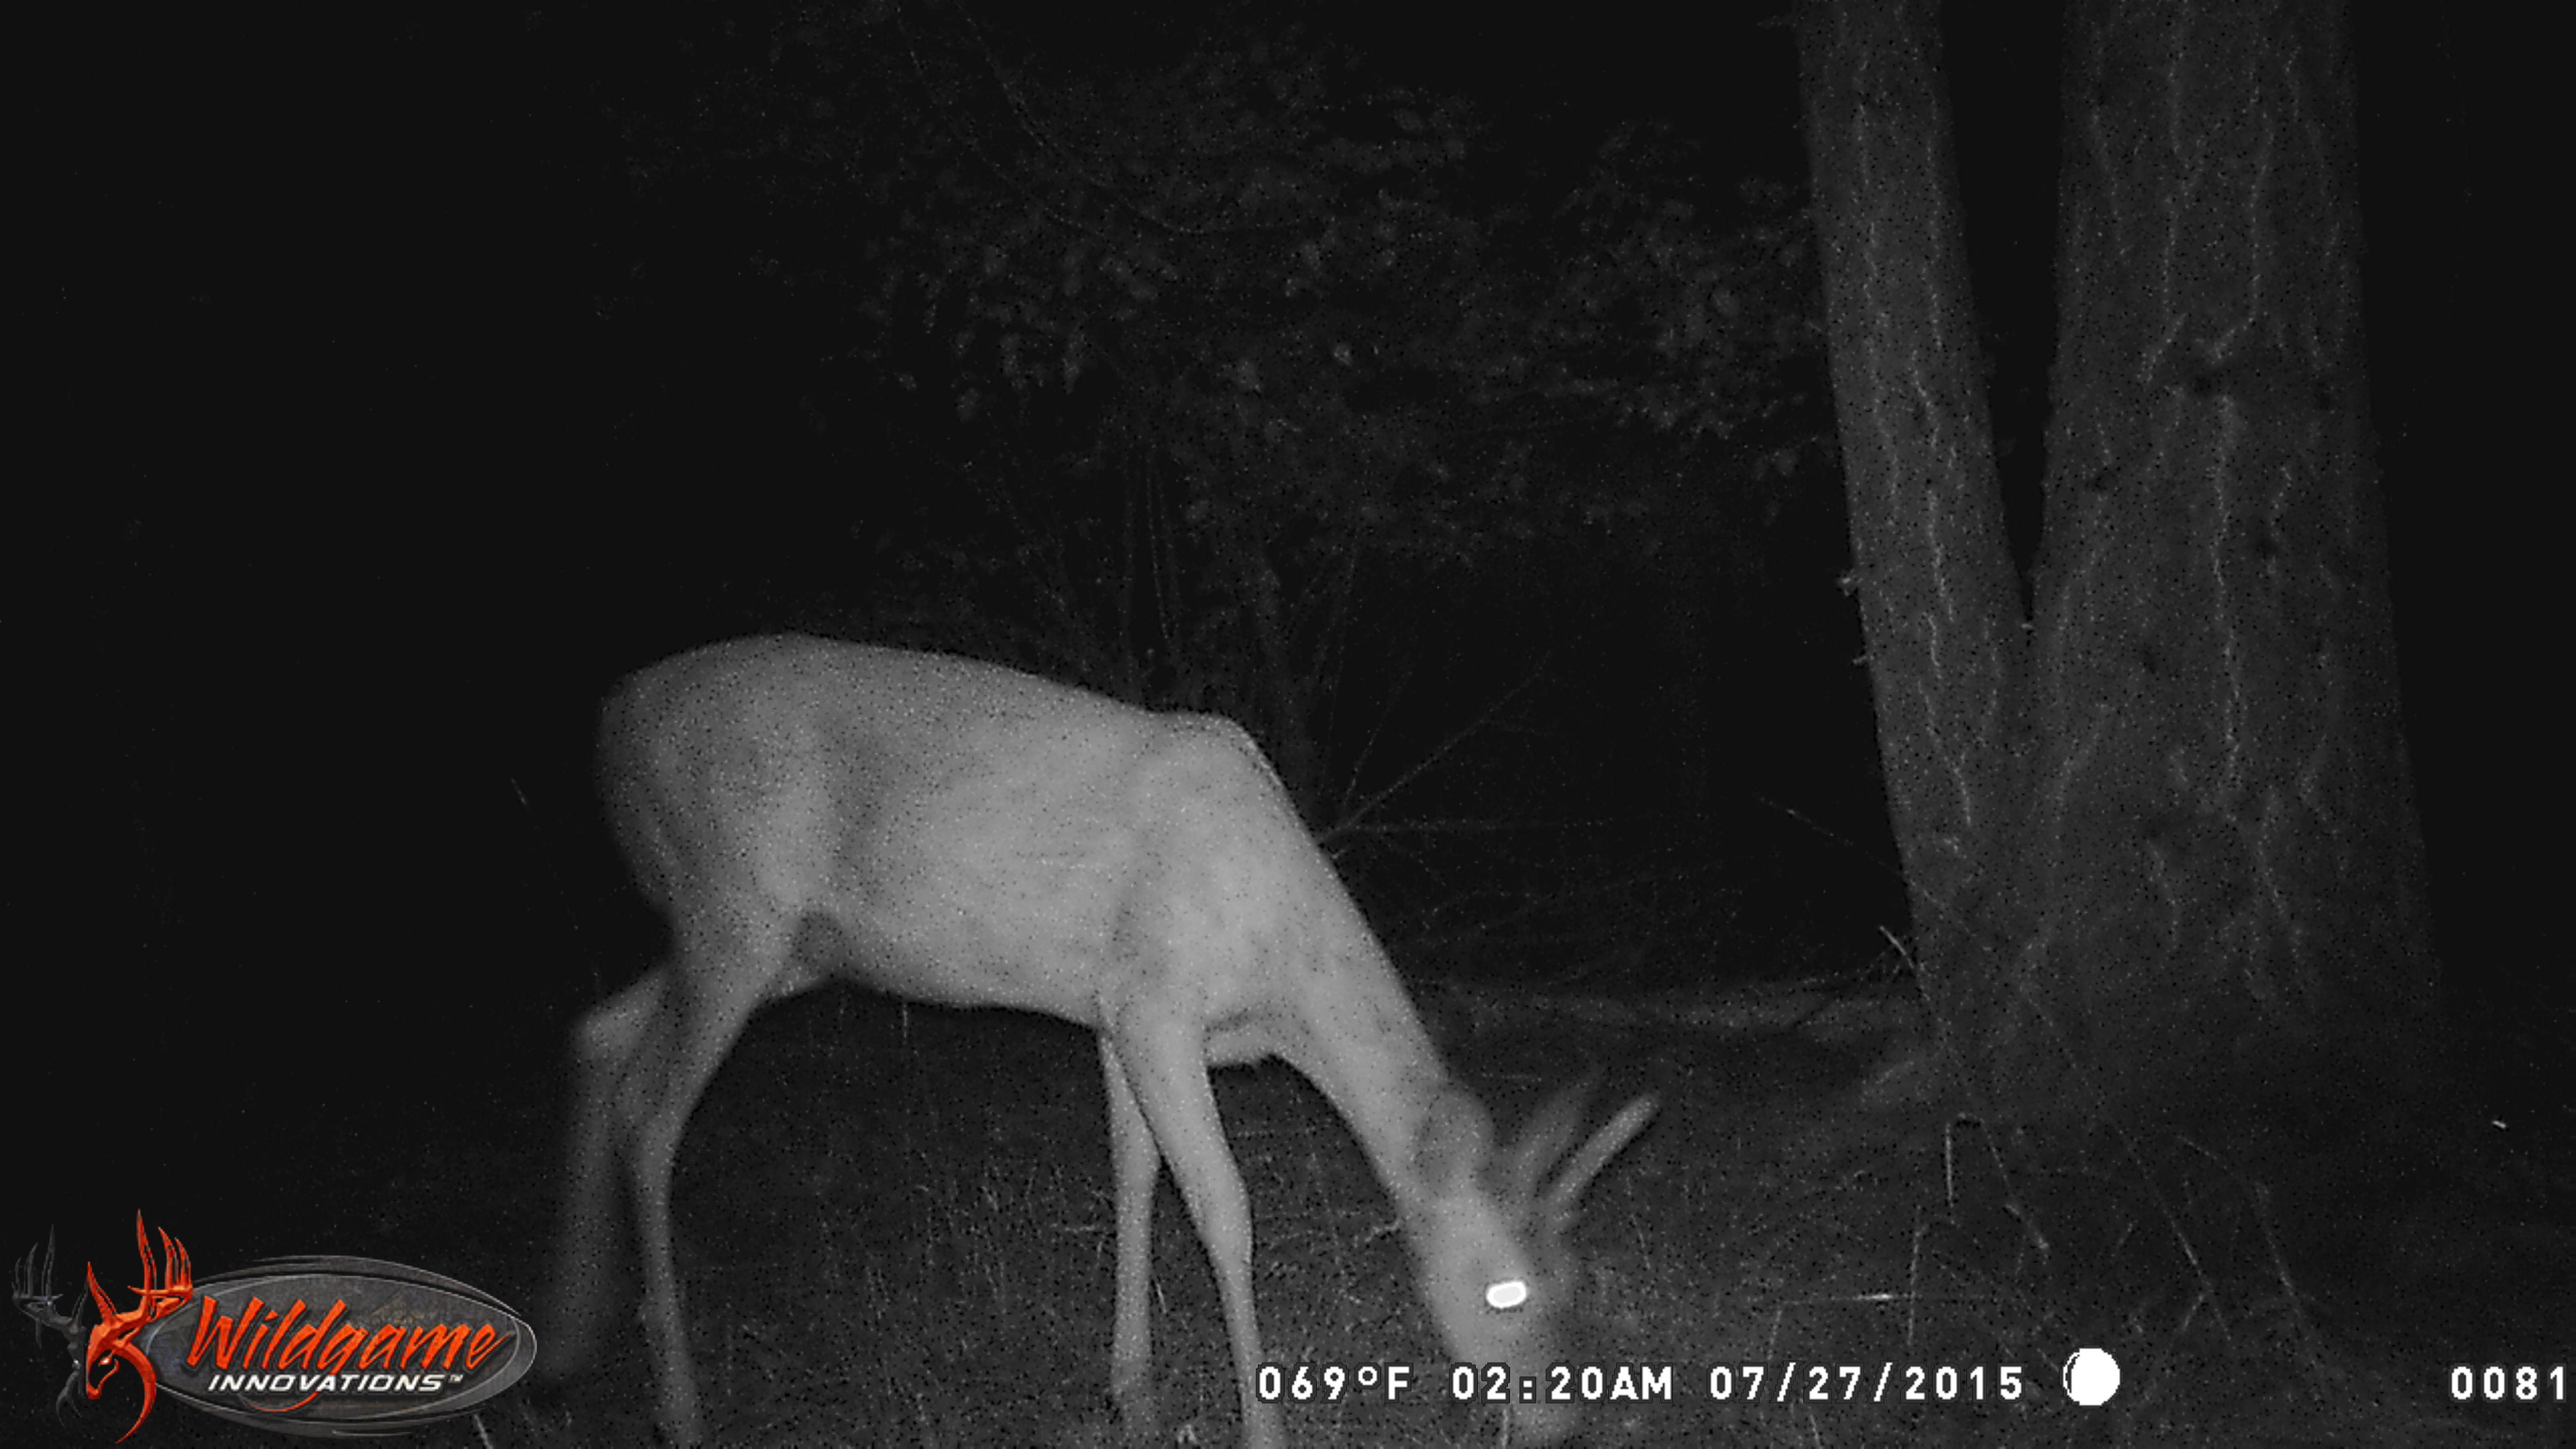 Wildgame Innovations Crush Illusion 8 LightsOut